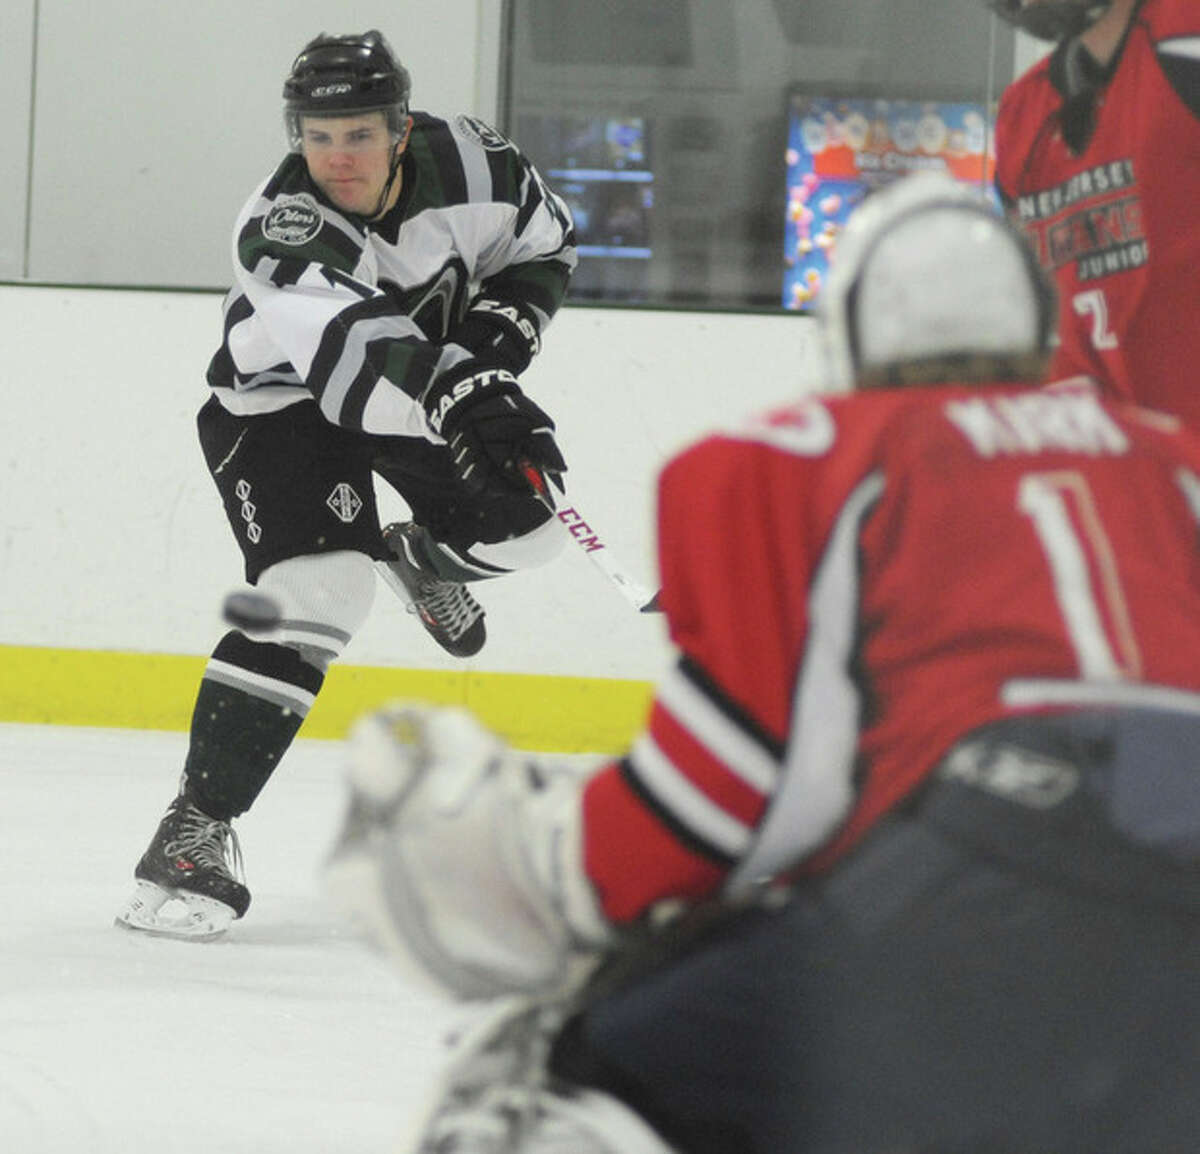 Hour photo/John Nash - Connecticut Oilers forward Michael Bunn, left, fires a shot on goal and New Jersey Titans goaltender Justin Kirk during Sunday's game at the SoNo Ice House.